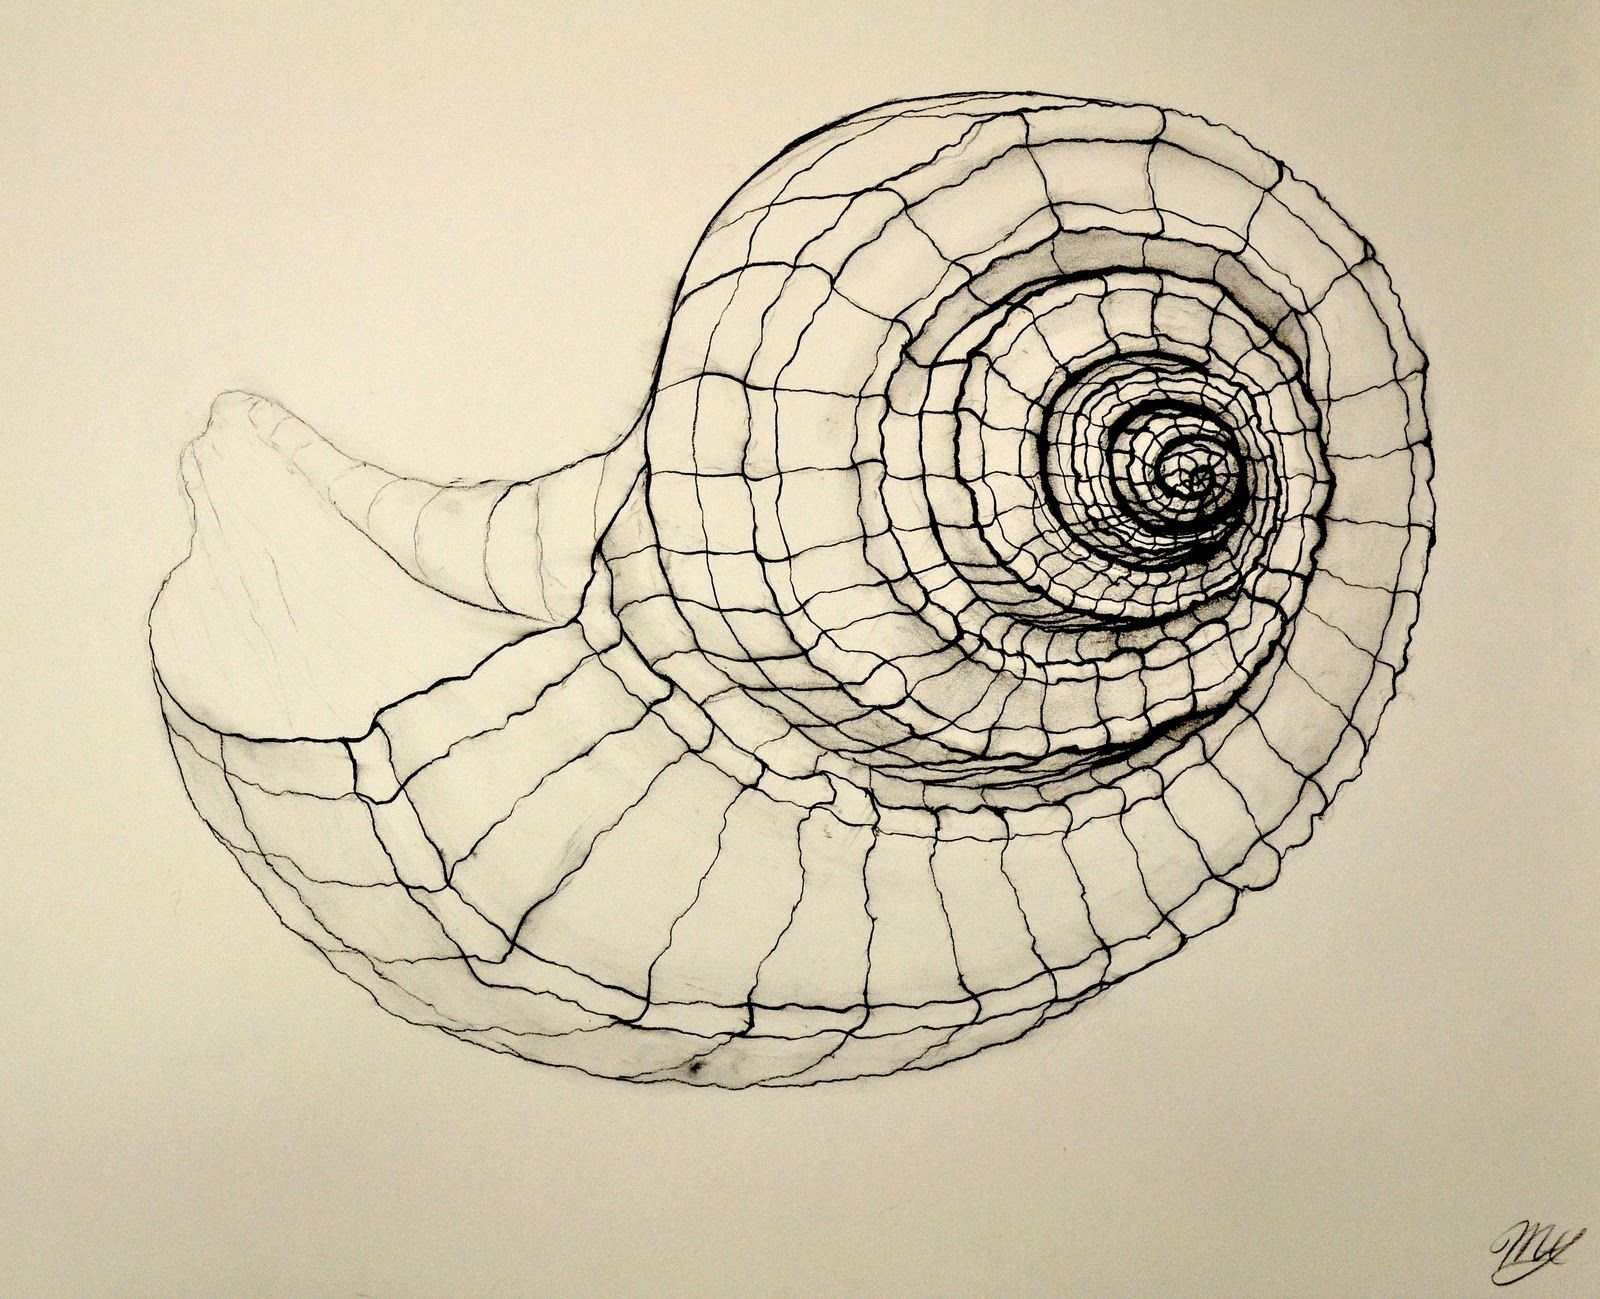 Pin by Linsey Lucas on Images | Pinterest | Shell, Draw and Sketches